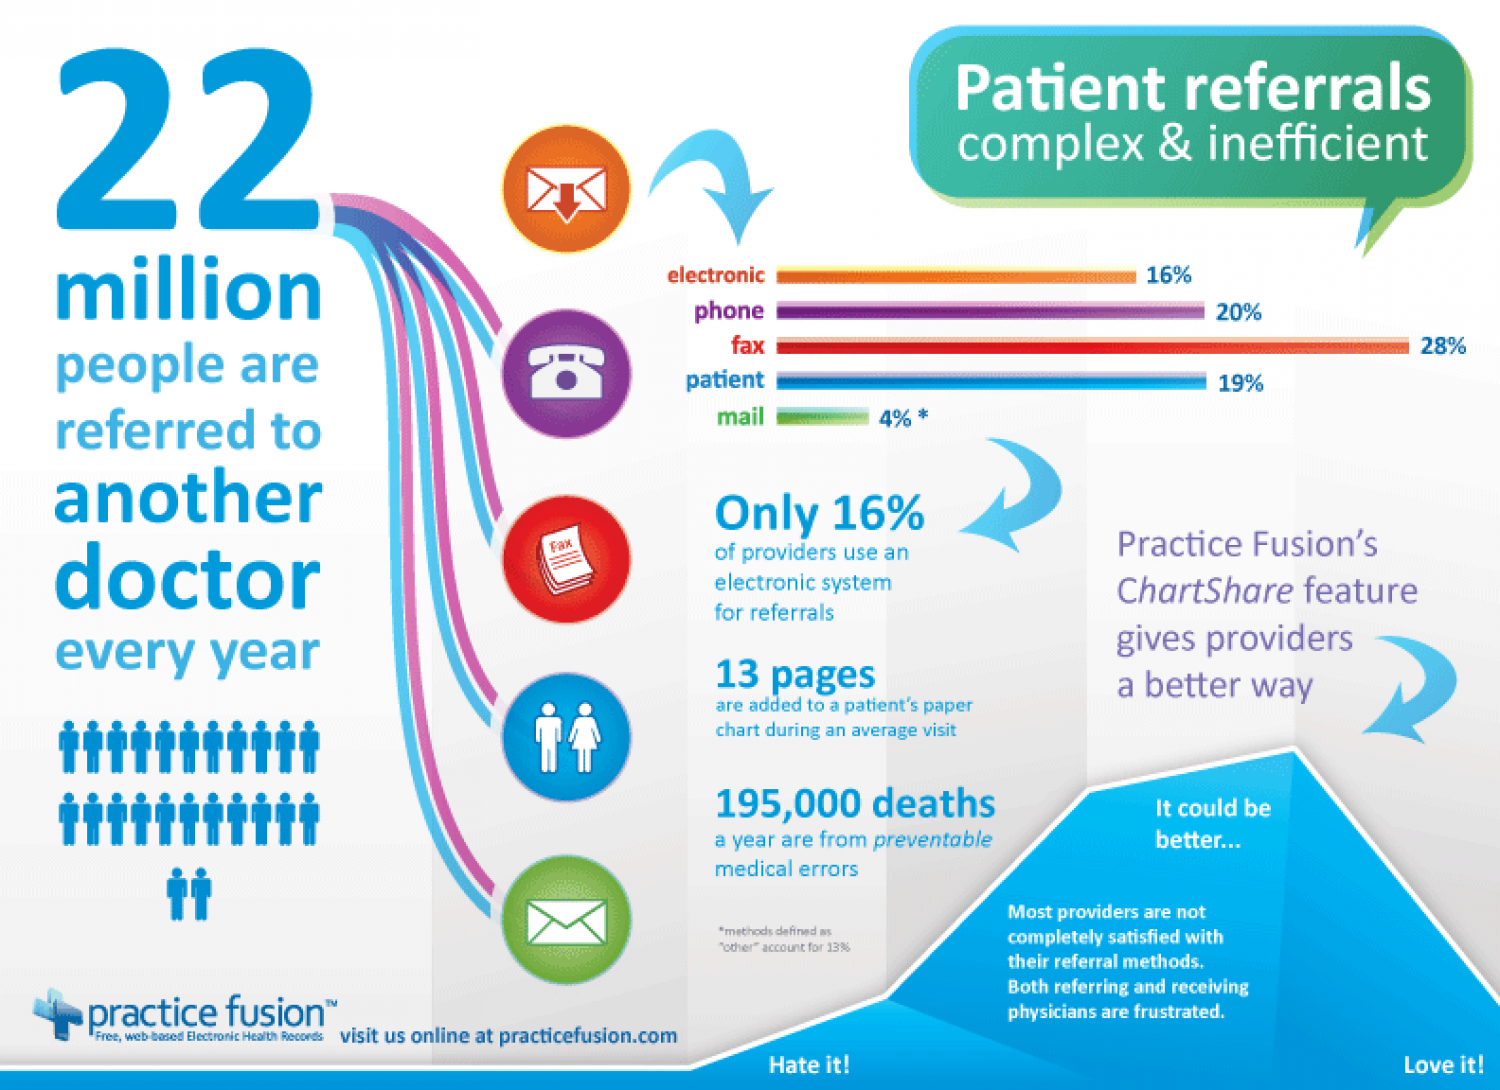 Gaps in Referral Process between US Medical Providers Infographic